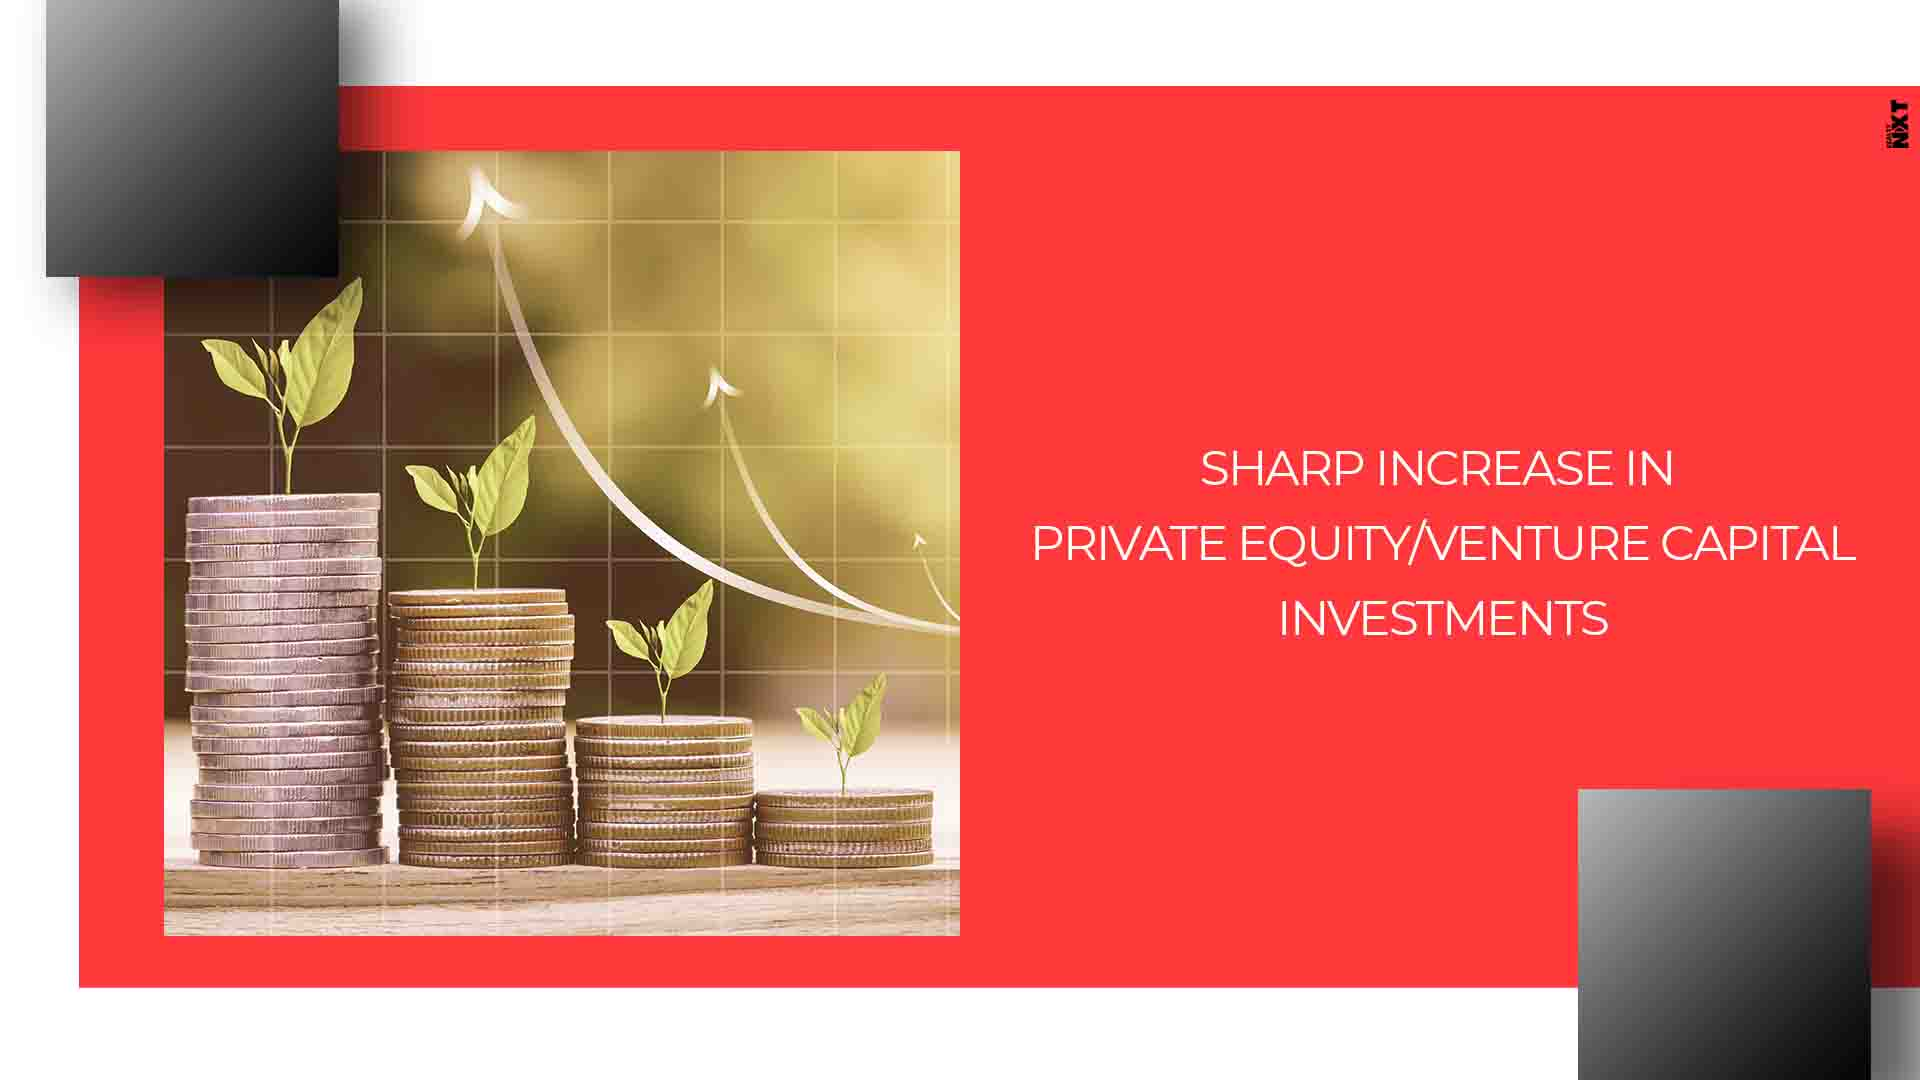 PE/VC Investments Recorded to be Highest in India